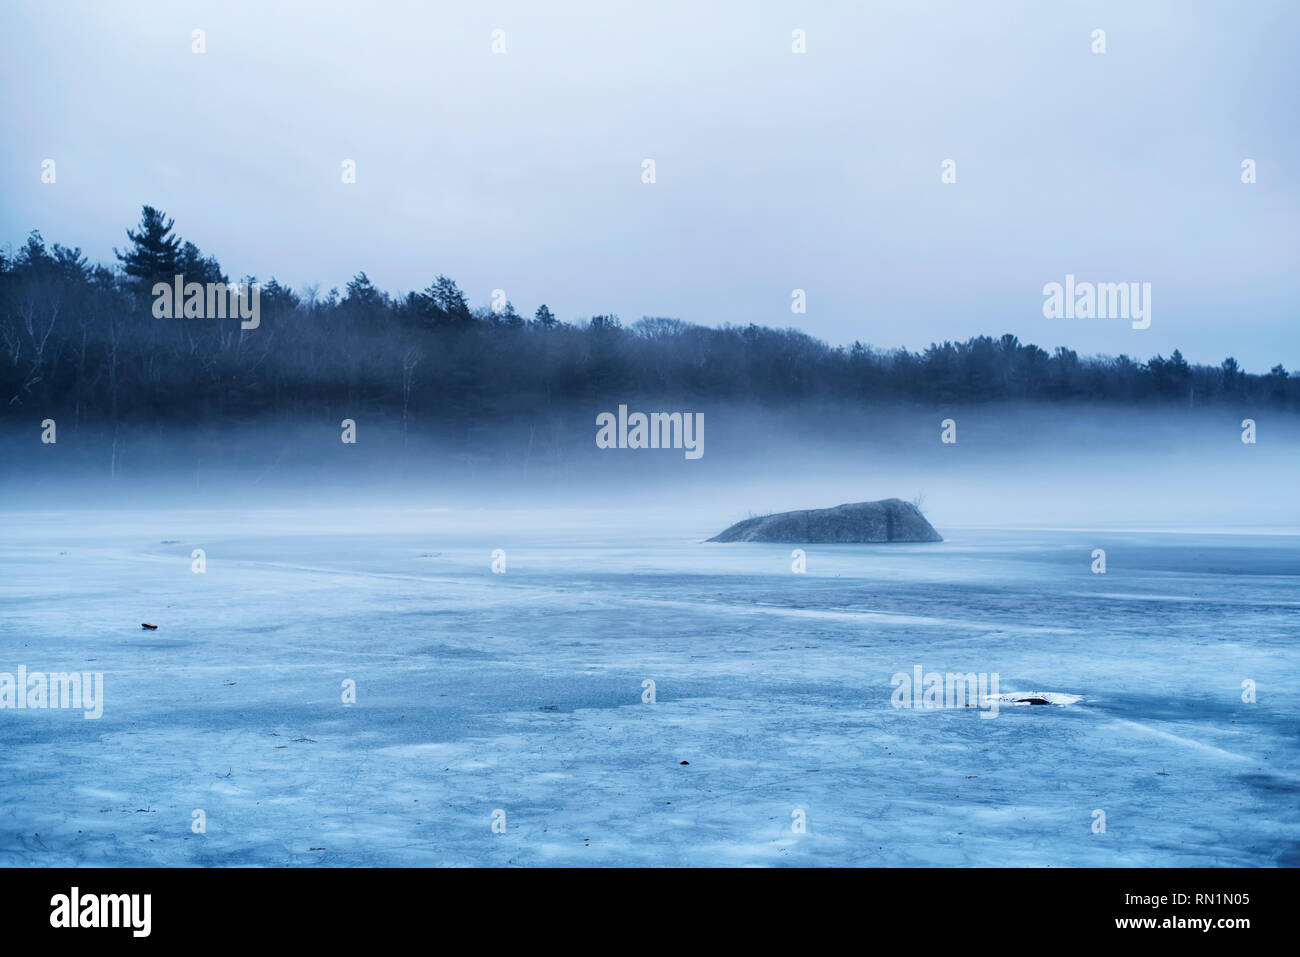 Mists rising above the frozen waters of Burr Pond State Park in winter in new england. - Stock Image